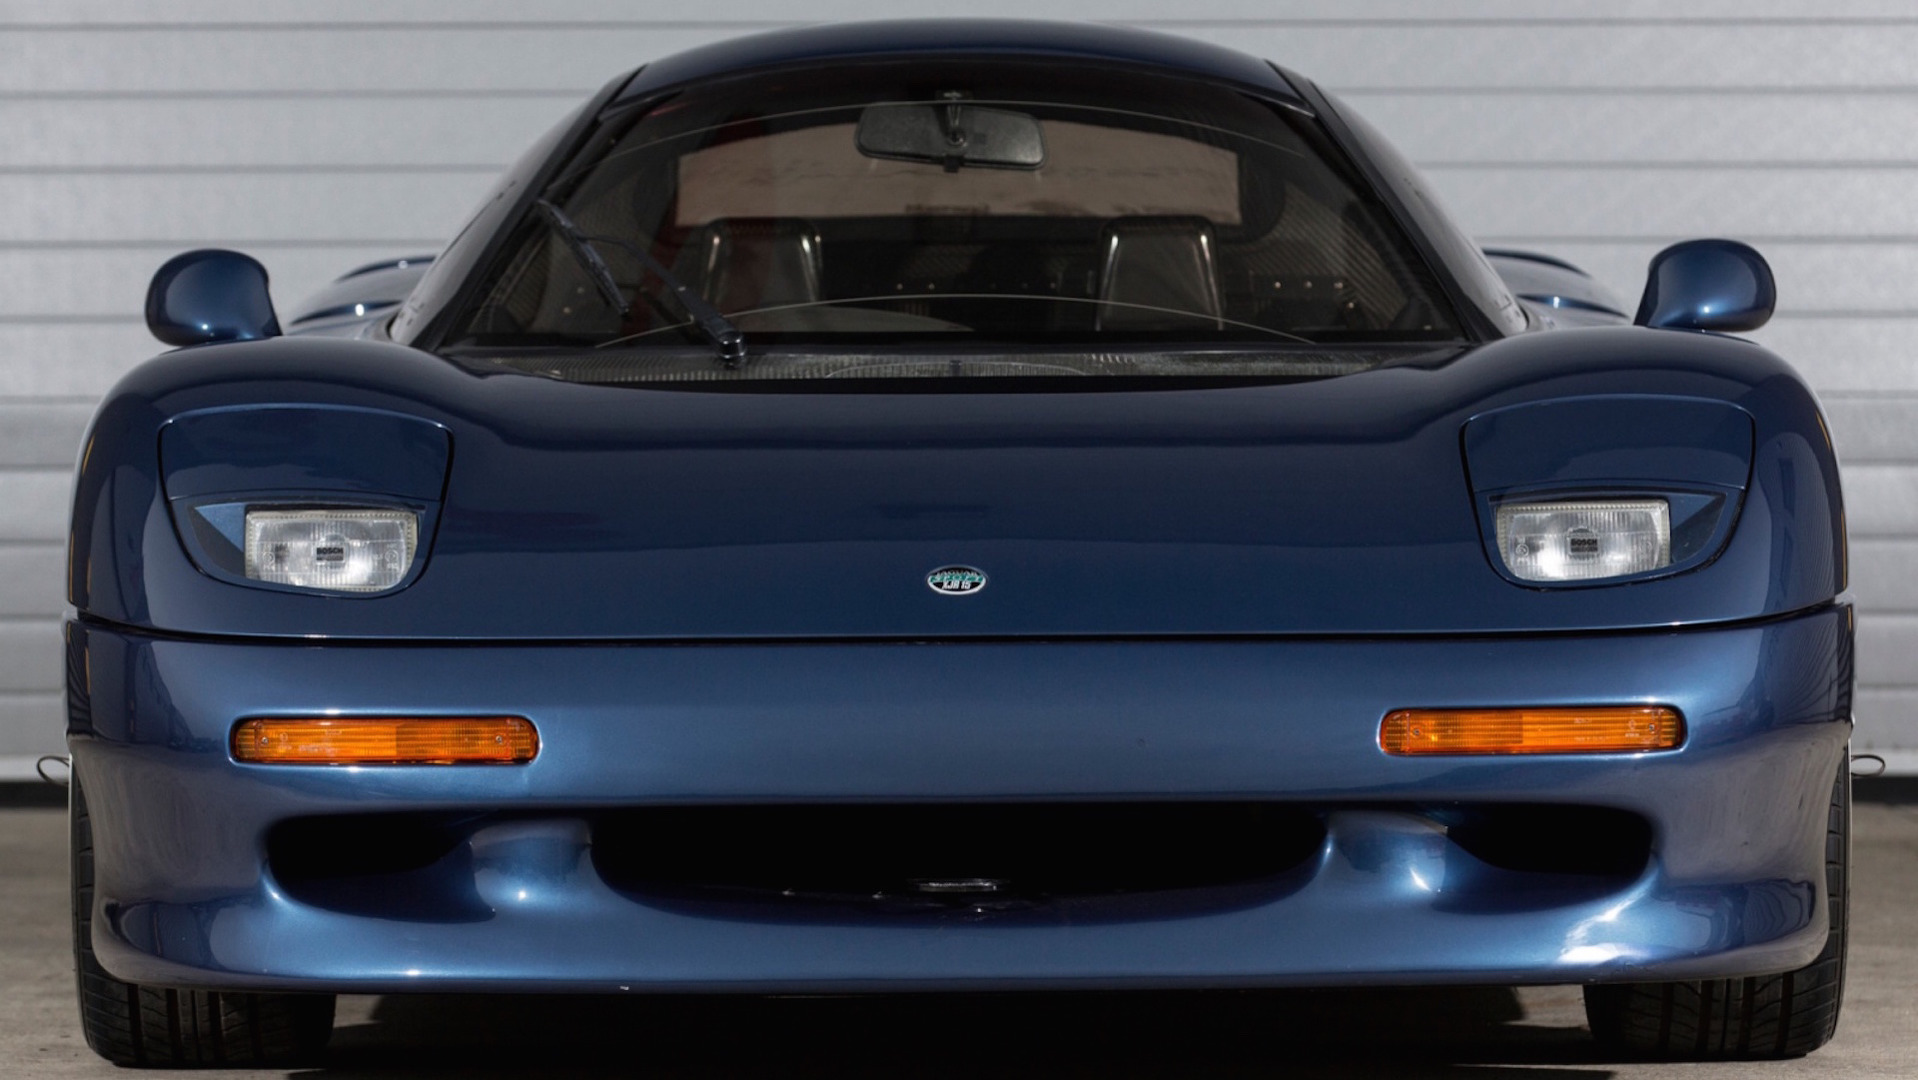 One of Jaguar's nearly-forgotten XJR-15 supercars is for sale